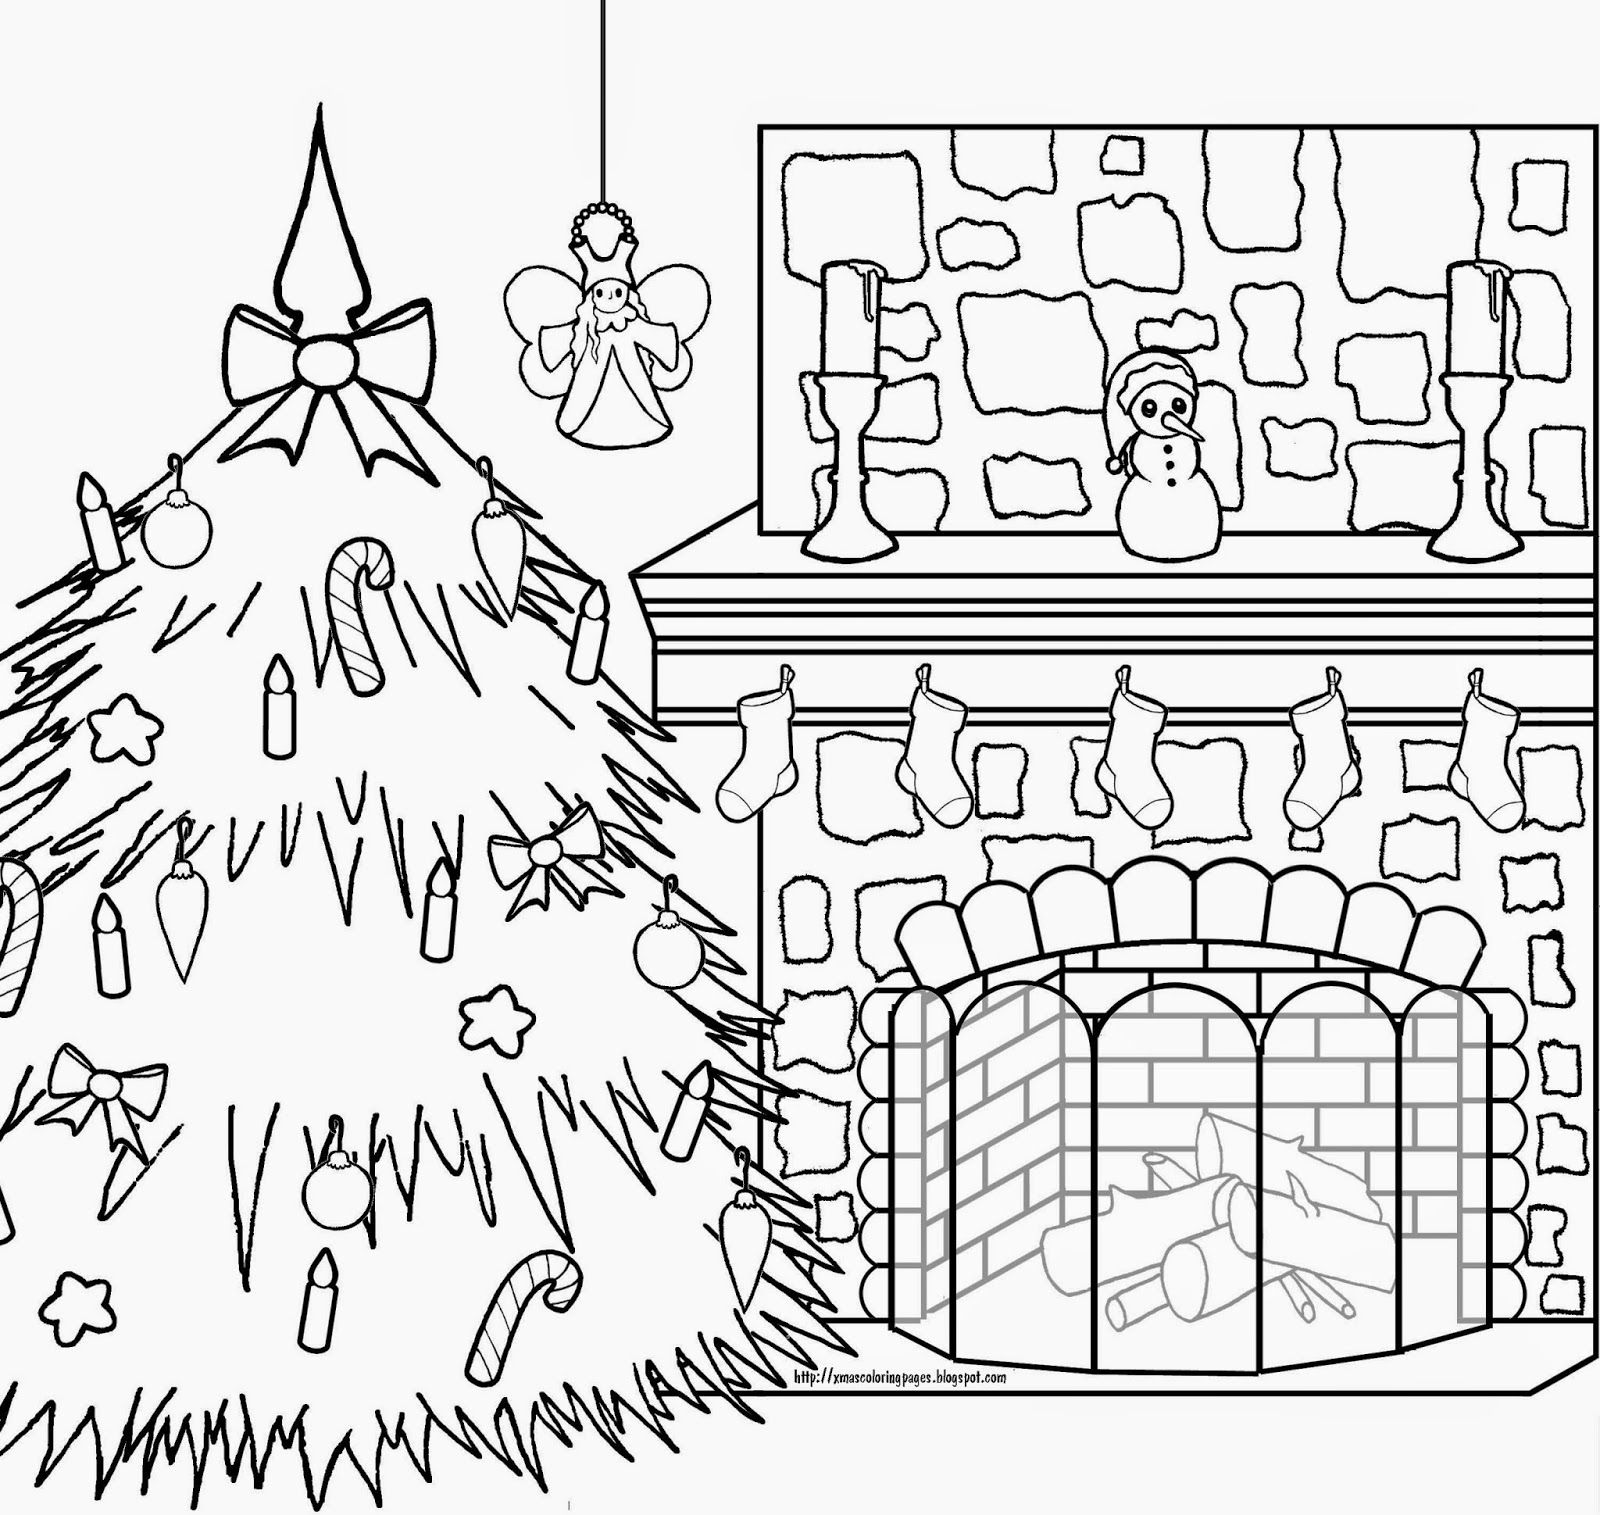 Christmas Fireplace Coloring Pages 17 Jpg 1600 1515 Christmas Coloring Pages Christmas Activities For Kids Coloring Pictures For Kids